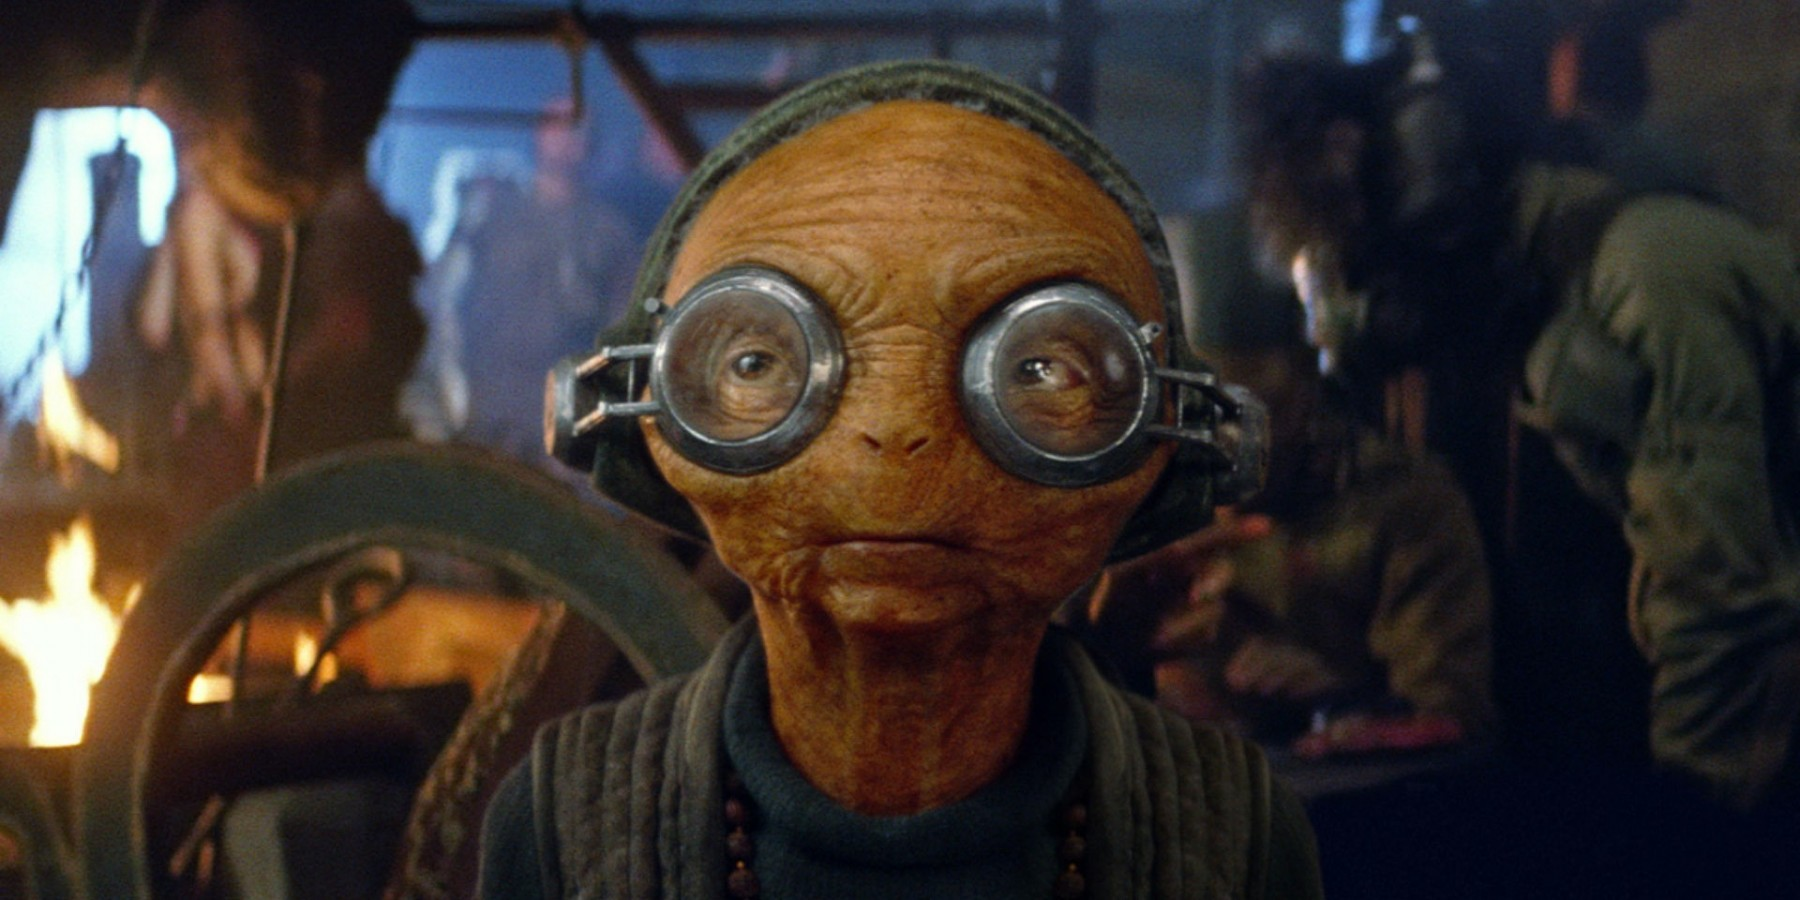 Maz Kanata Star Wars Episode 7 The Force Awakens